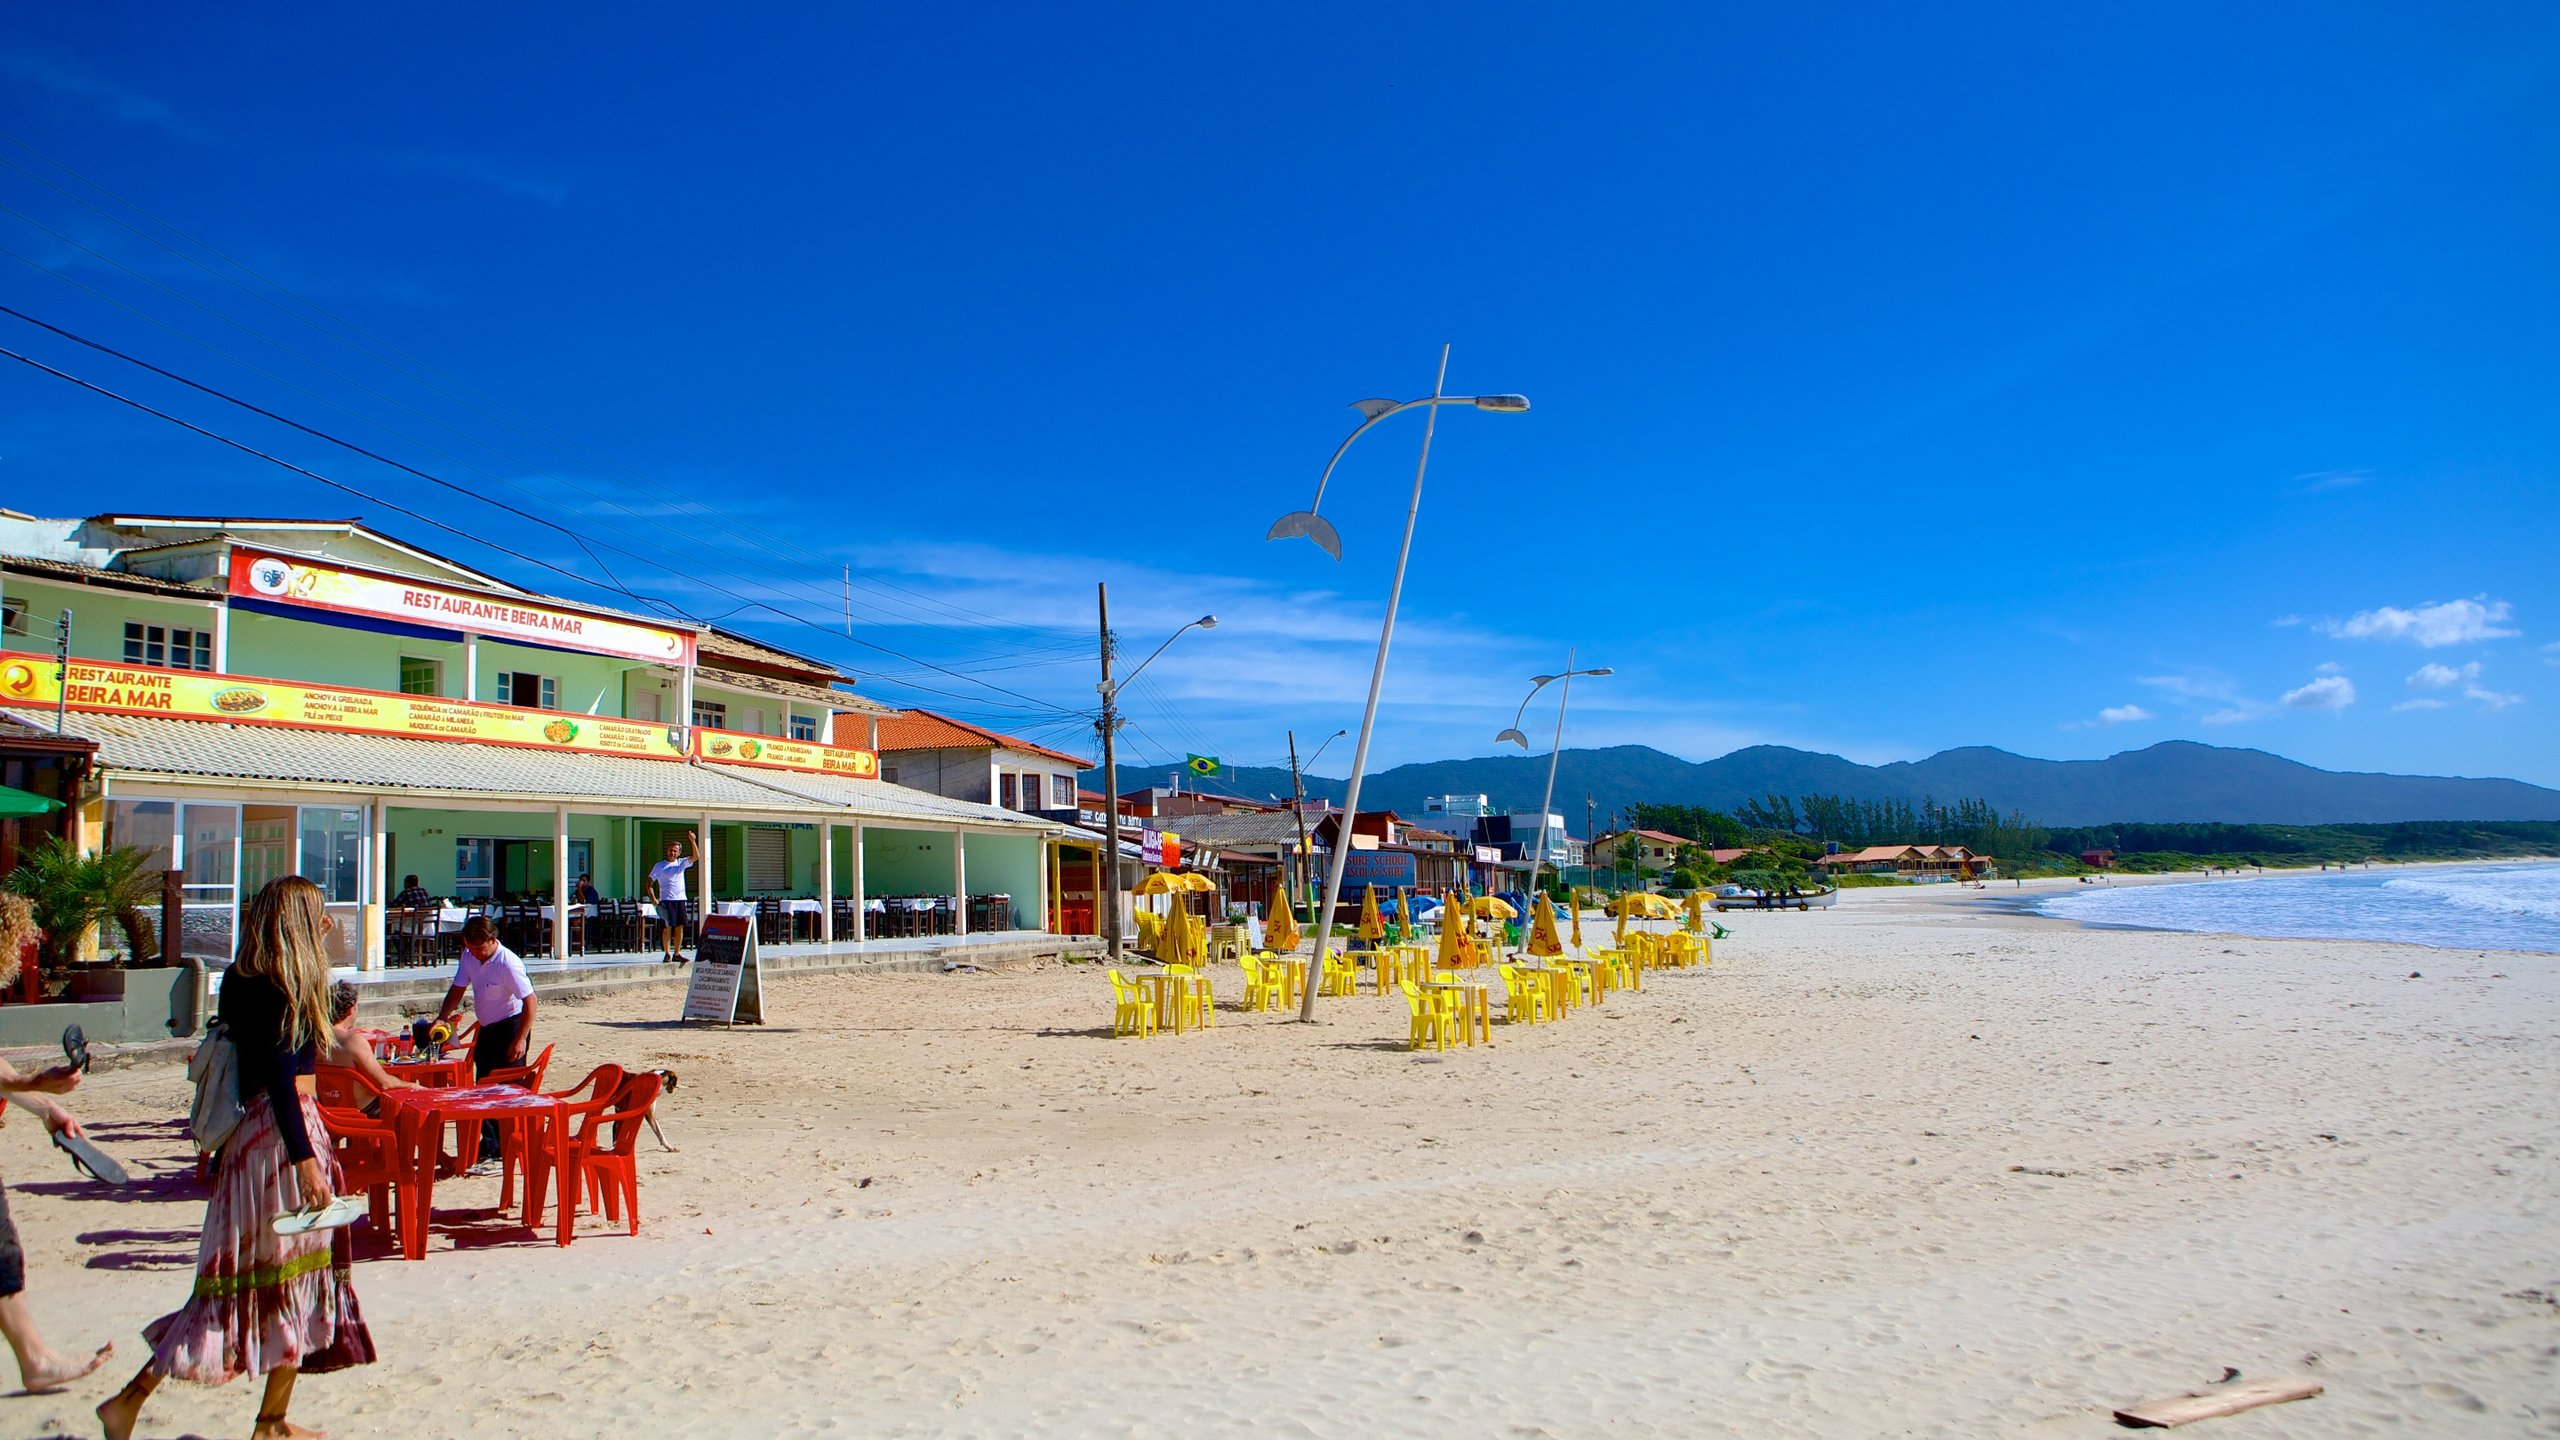 10 Best Hotels with Free Wifi in Santa Catarina Island for